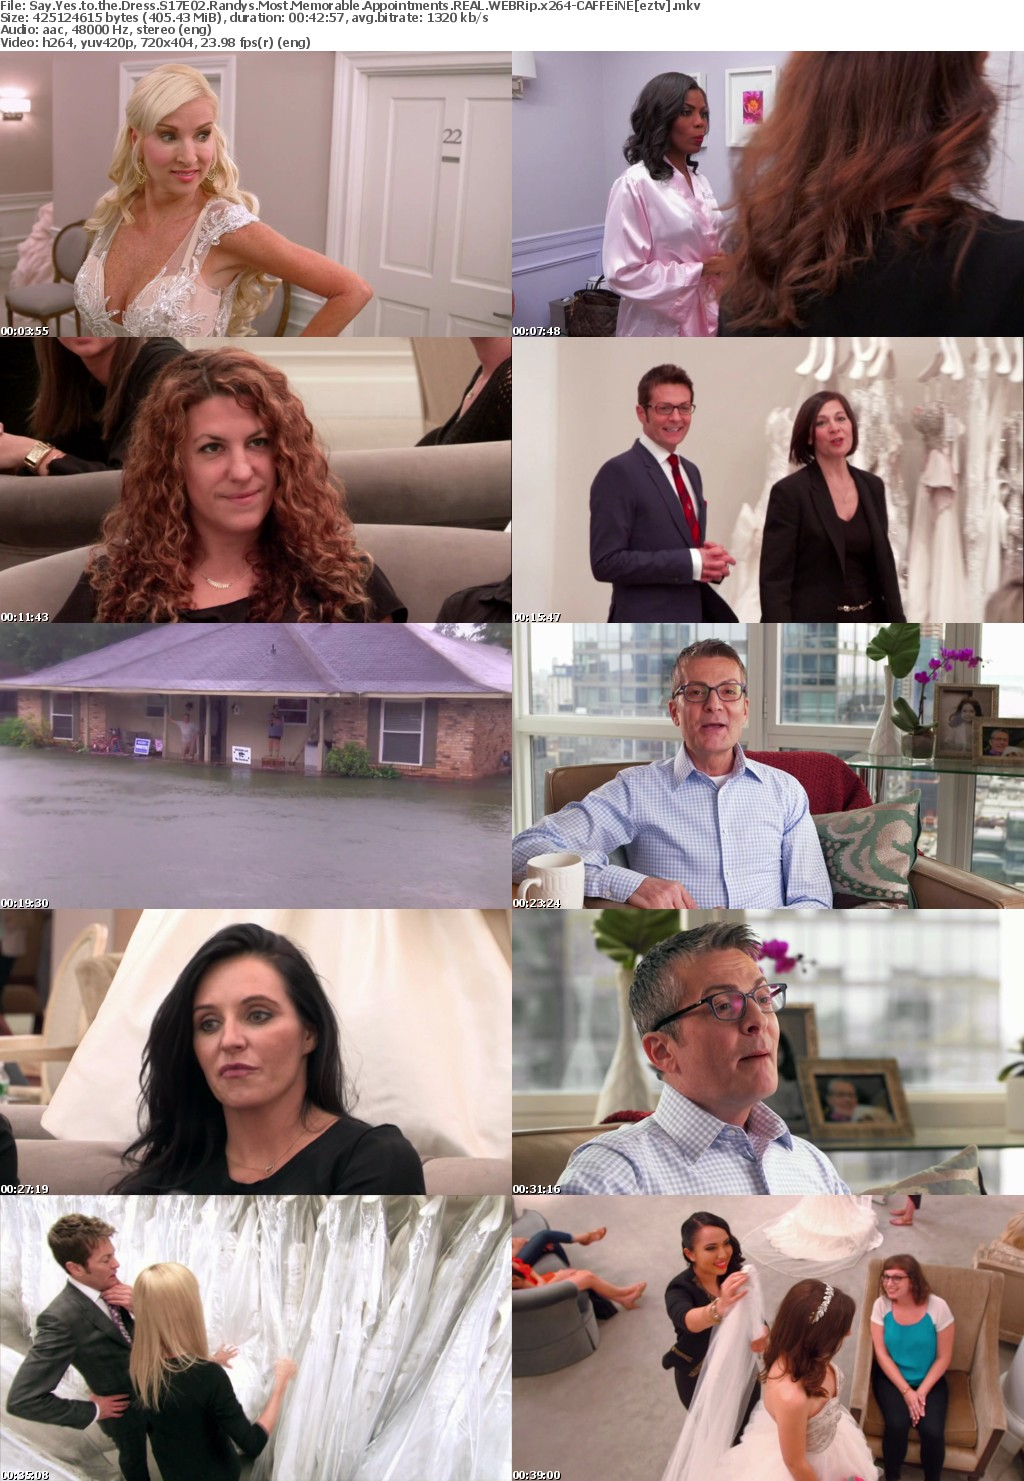 Say Yes to the Dress S17E02 Randys Most Memorable Appointments REAL WEBRip x264-CAFFEiNE